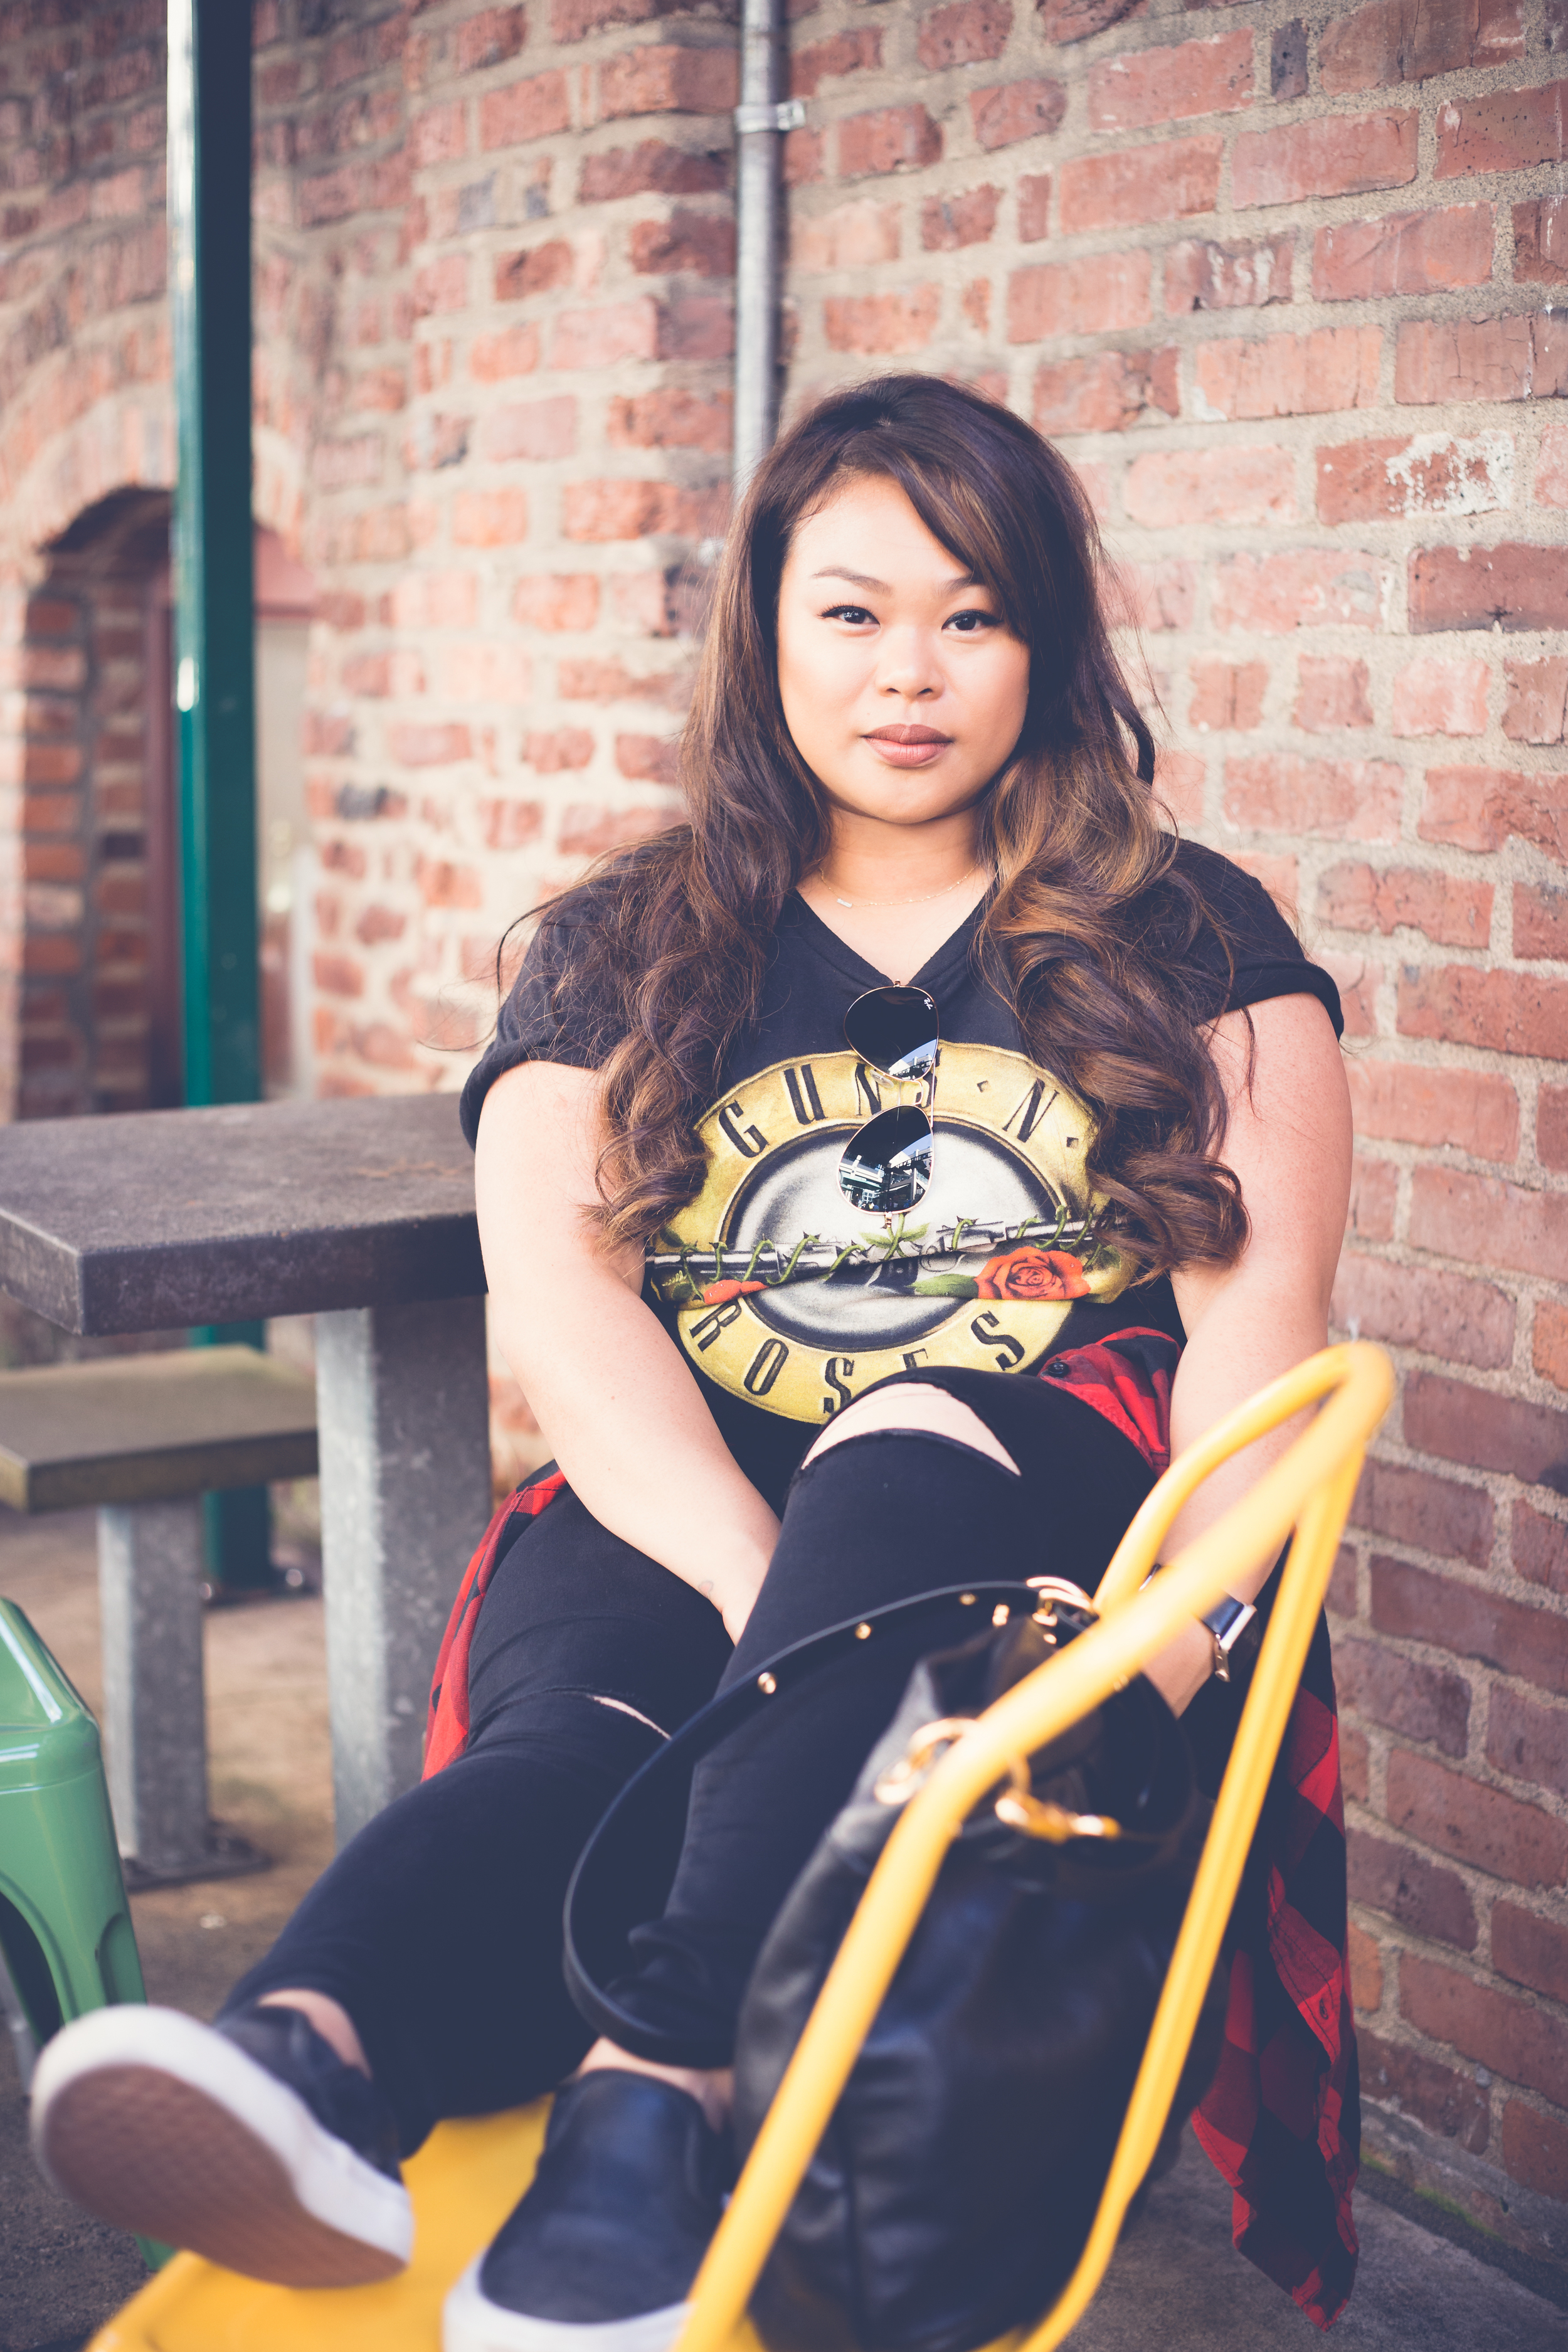 Street vibes against a cool brick wall. I love how the yellow chair compliments her t-shirt design.